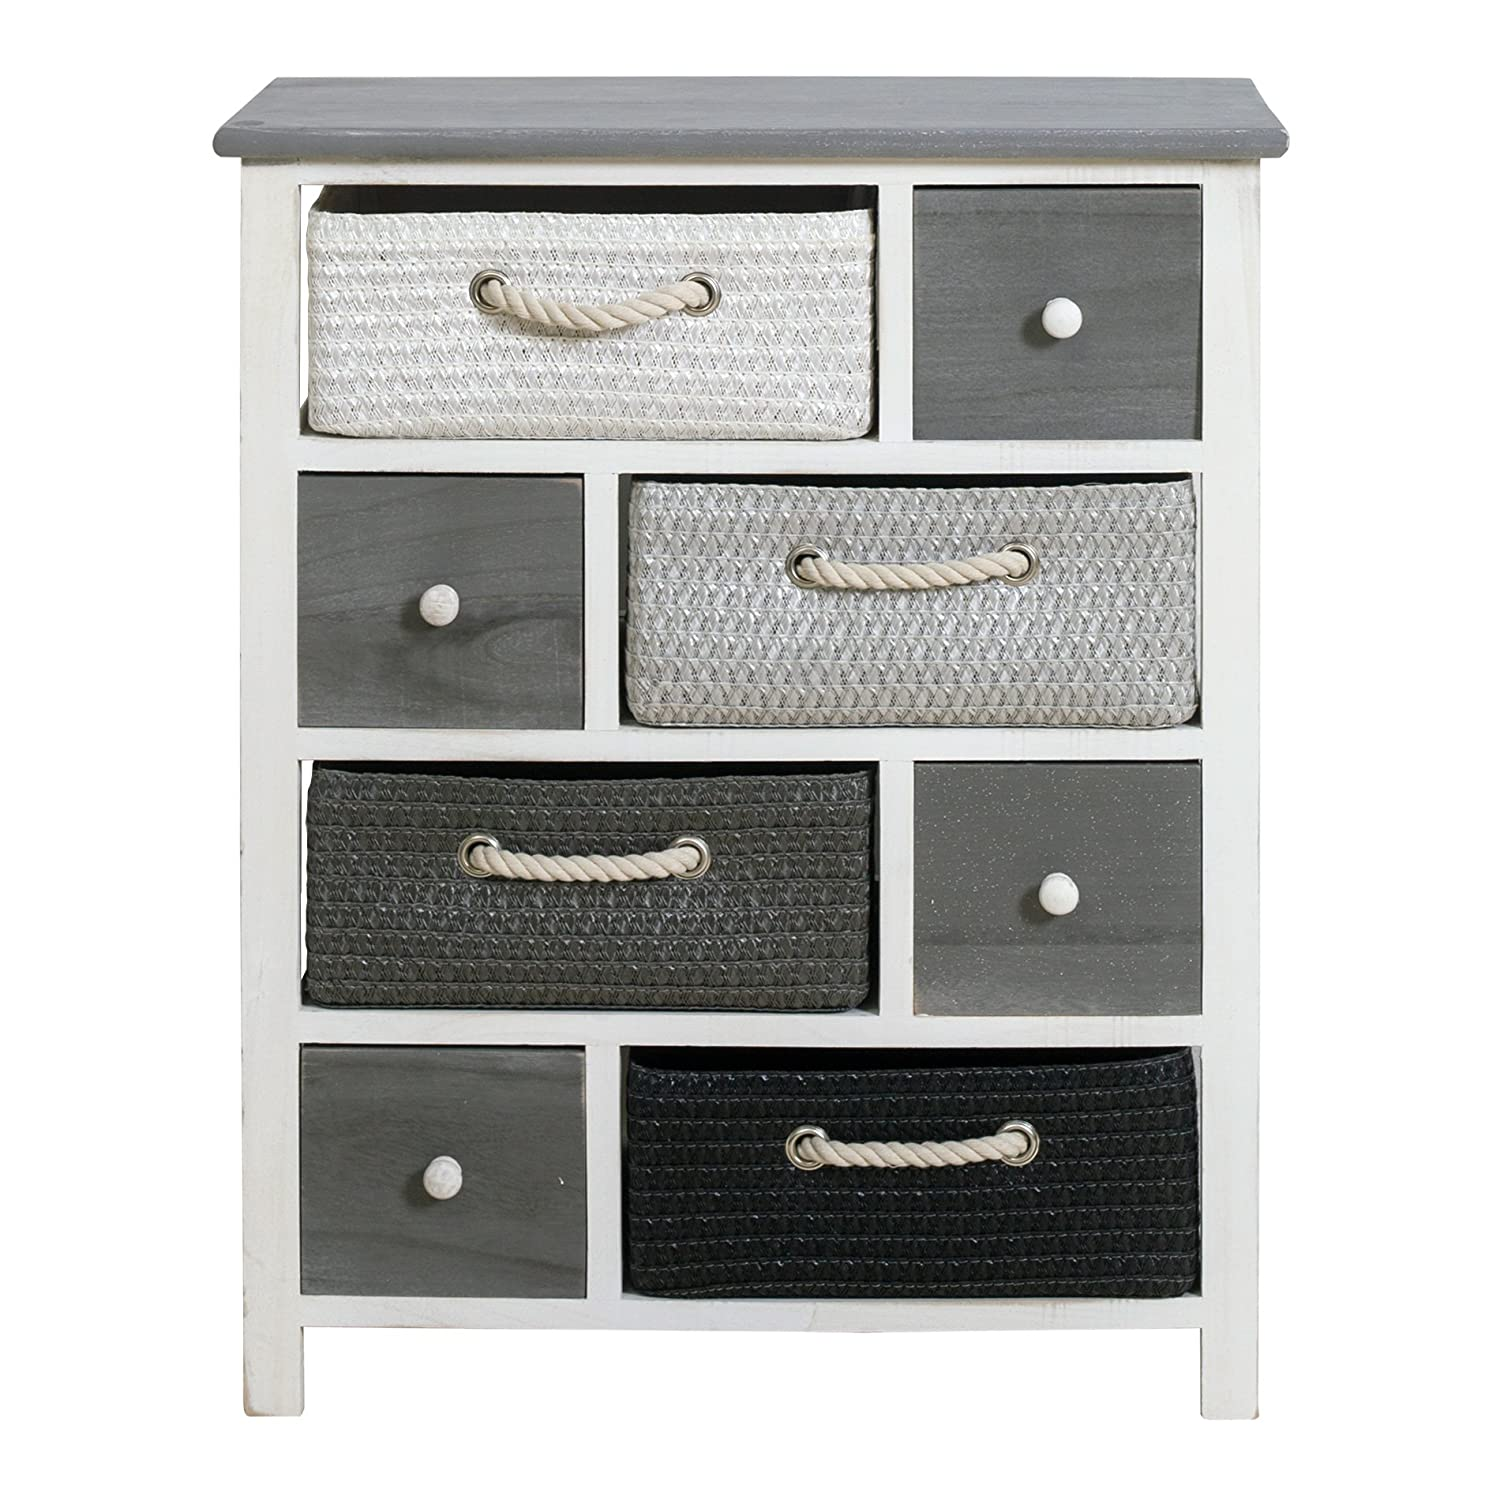 Rebecca srl Chest of drawers Cabinet 4 Wooden Drawers and 4 Wicker Baskets White Grey Black Vintage Shabby Bedroom (Cod. RE4325)